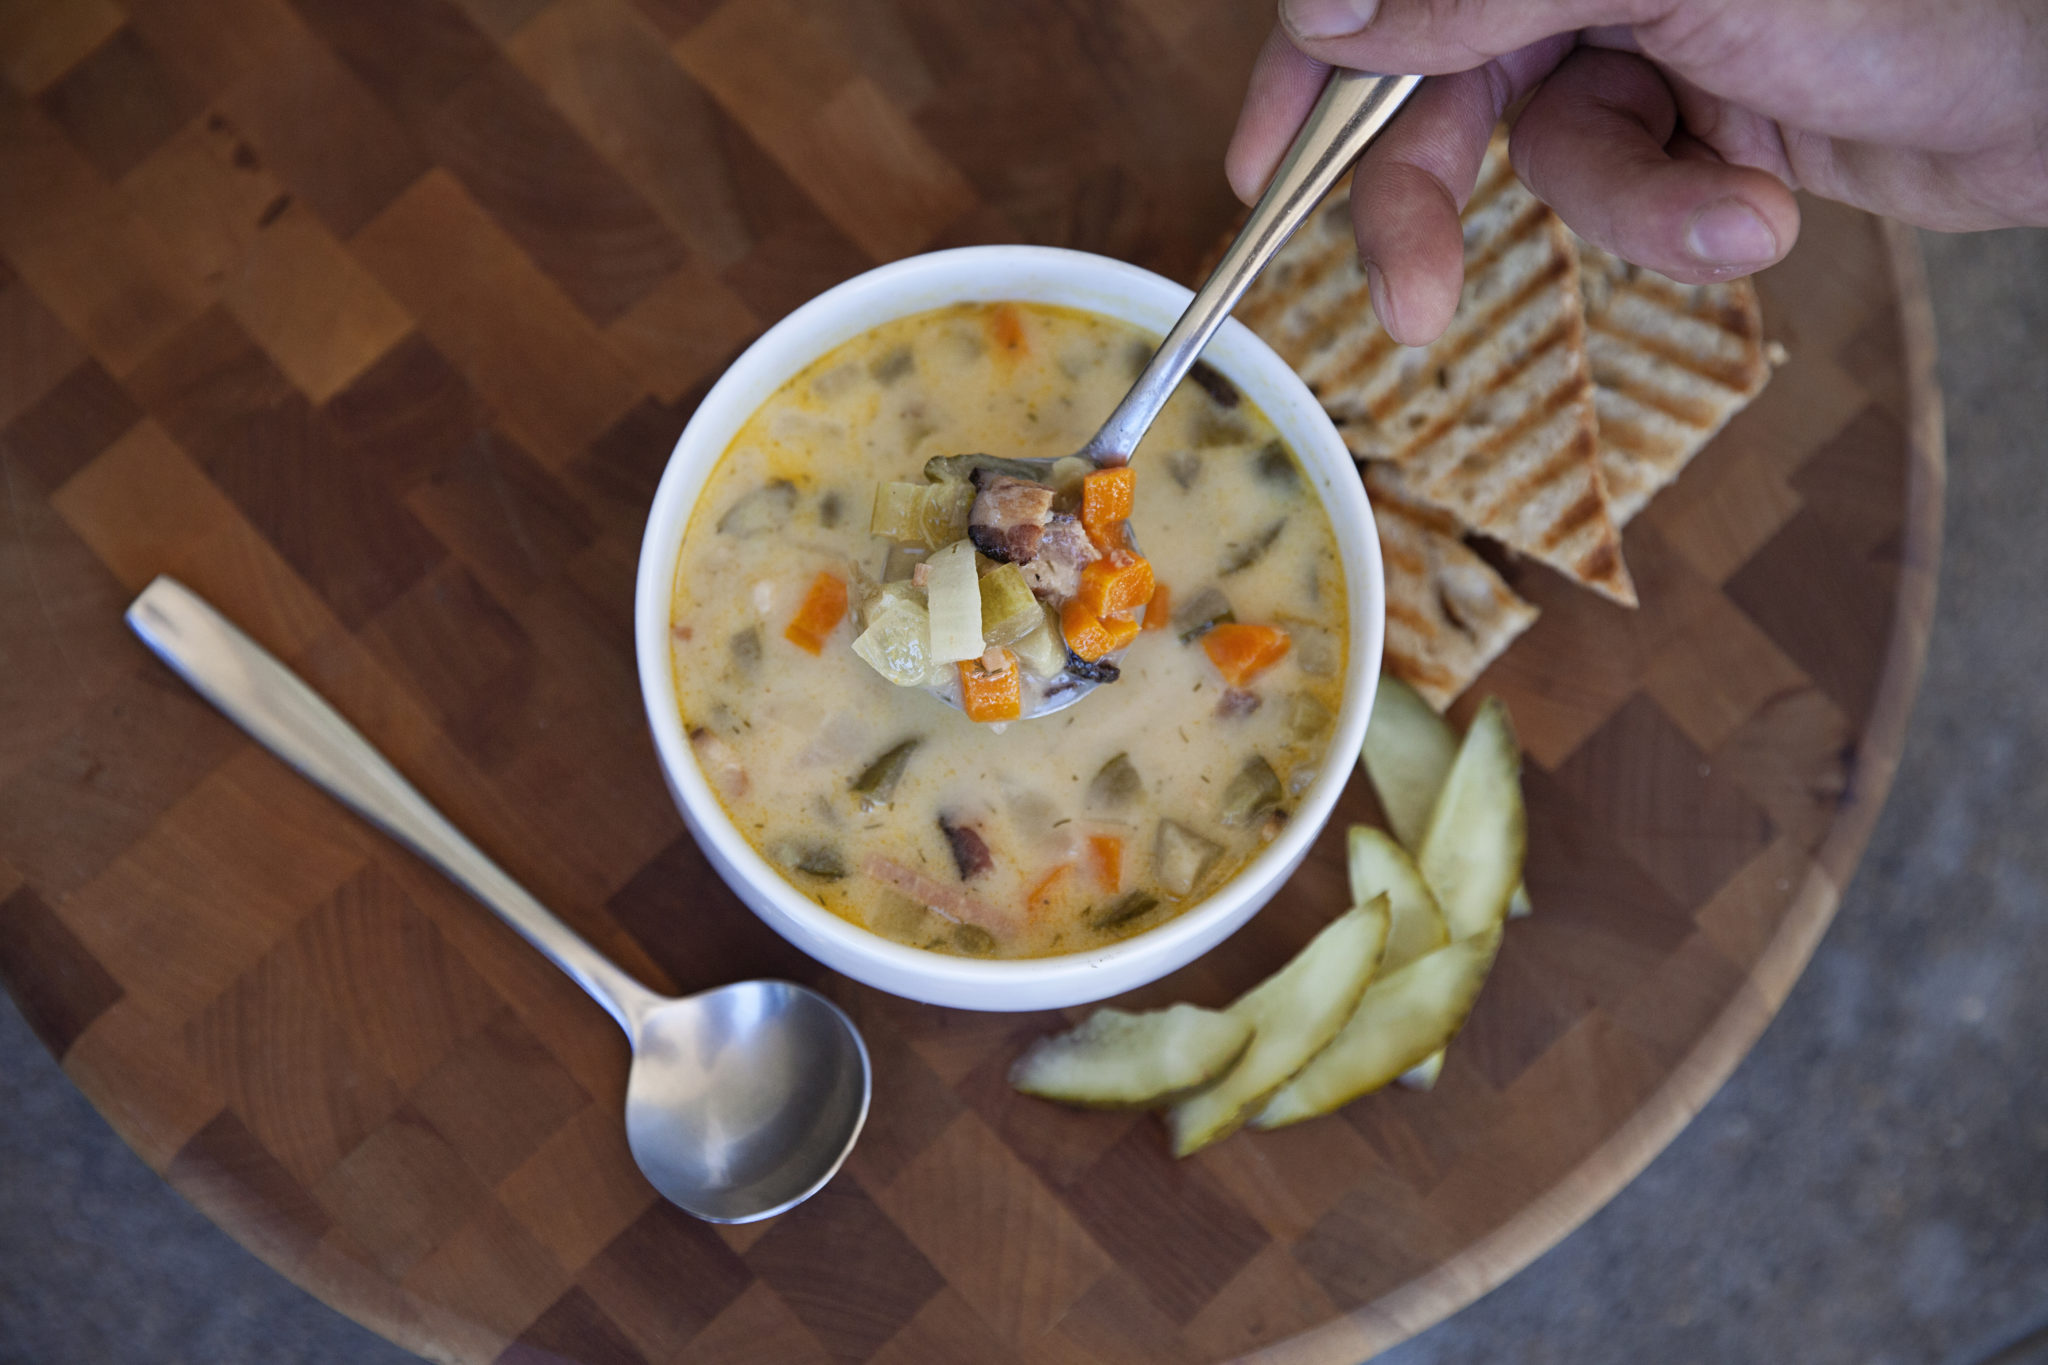 bowl of creamy soup with chunks of carrots and pickles with toasted bread on the side